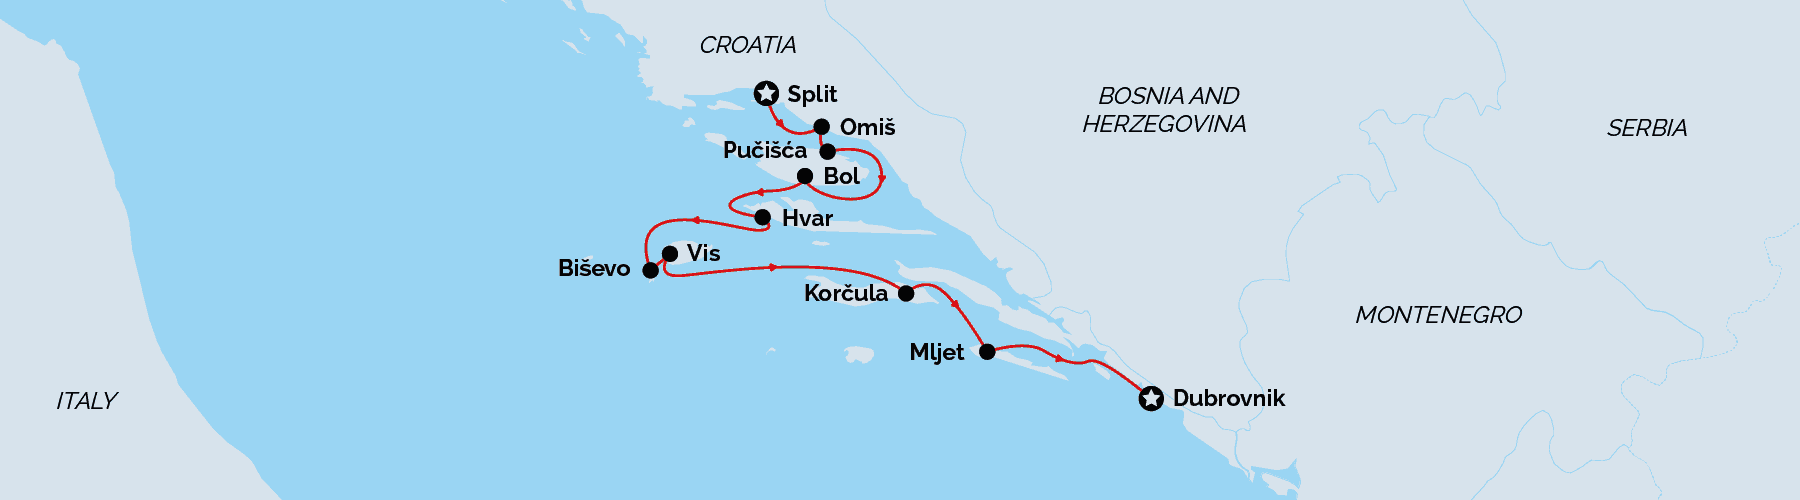 superior cruise, Split to Dubrovnik route map